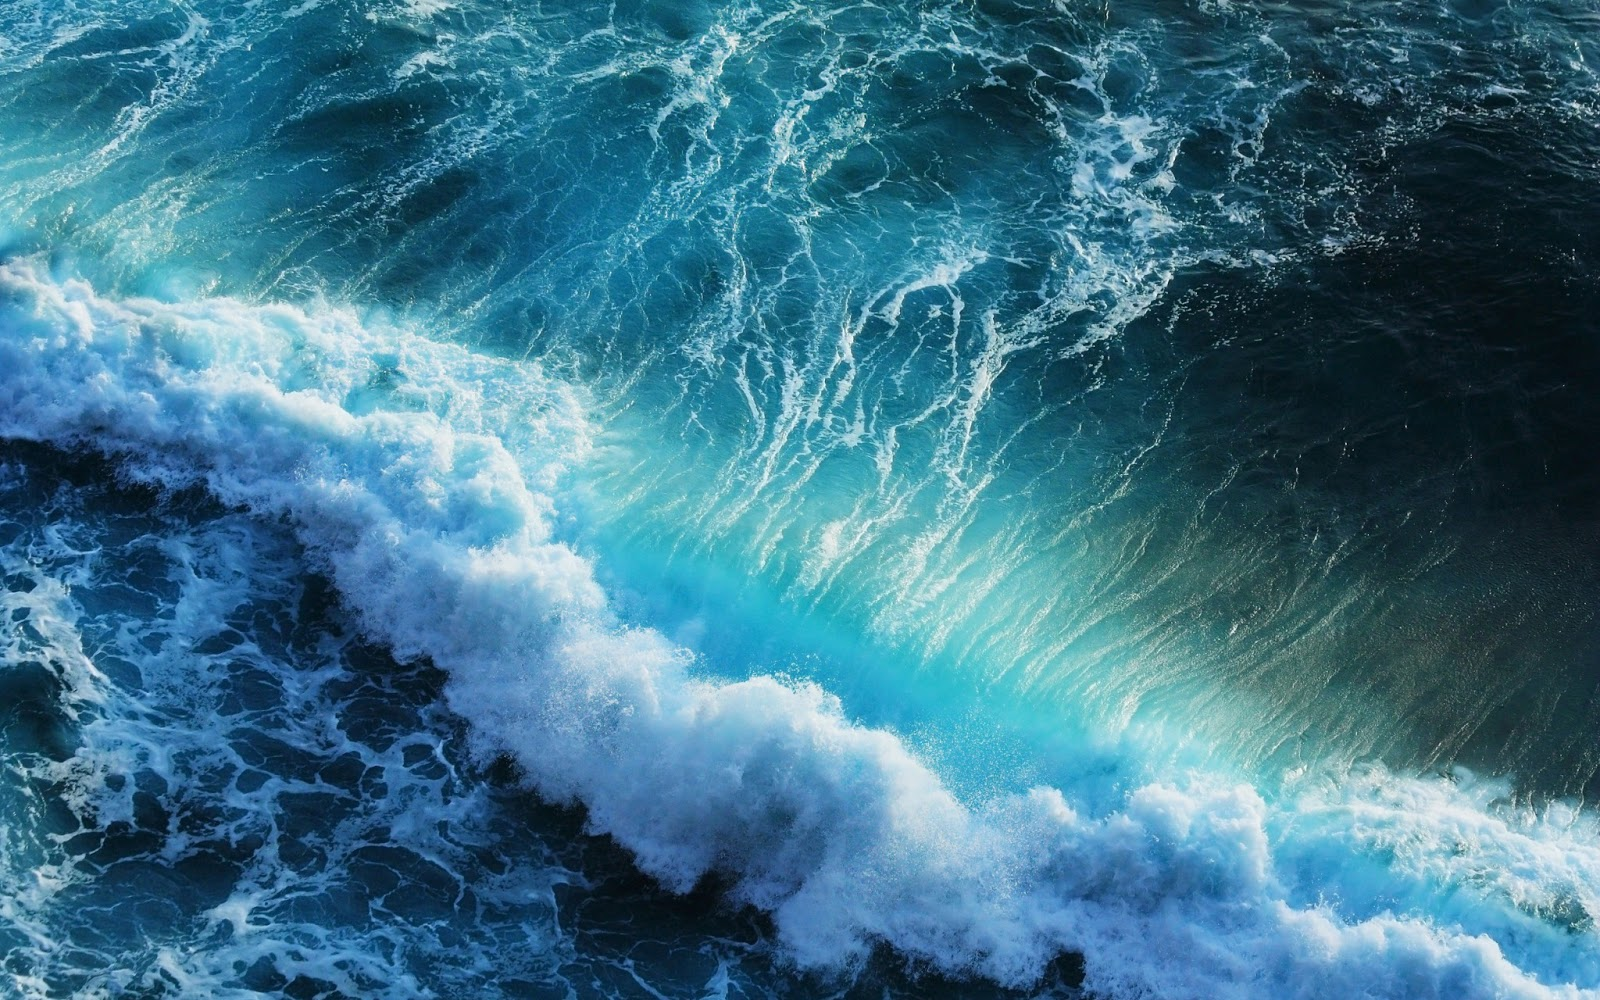 Download Ocean Waves Wallpapers Most beautiful places in the 1600x1000